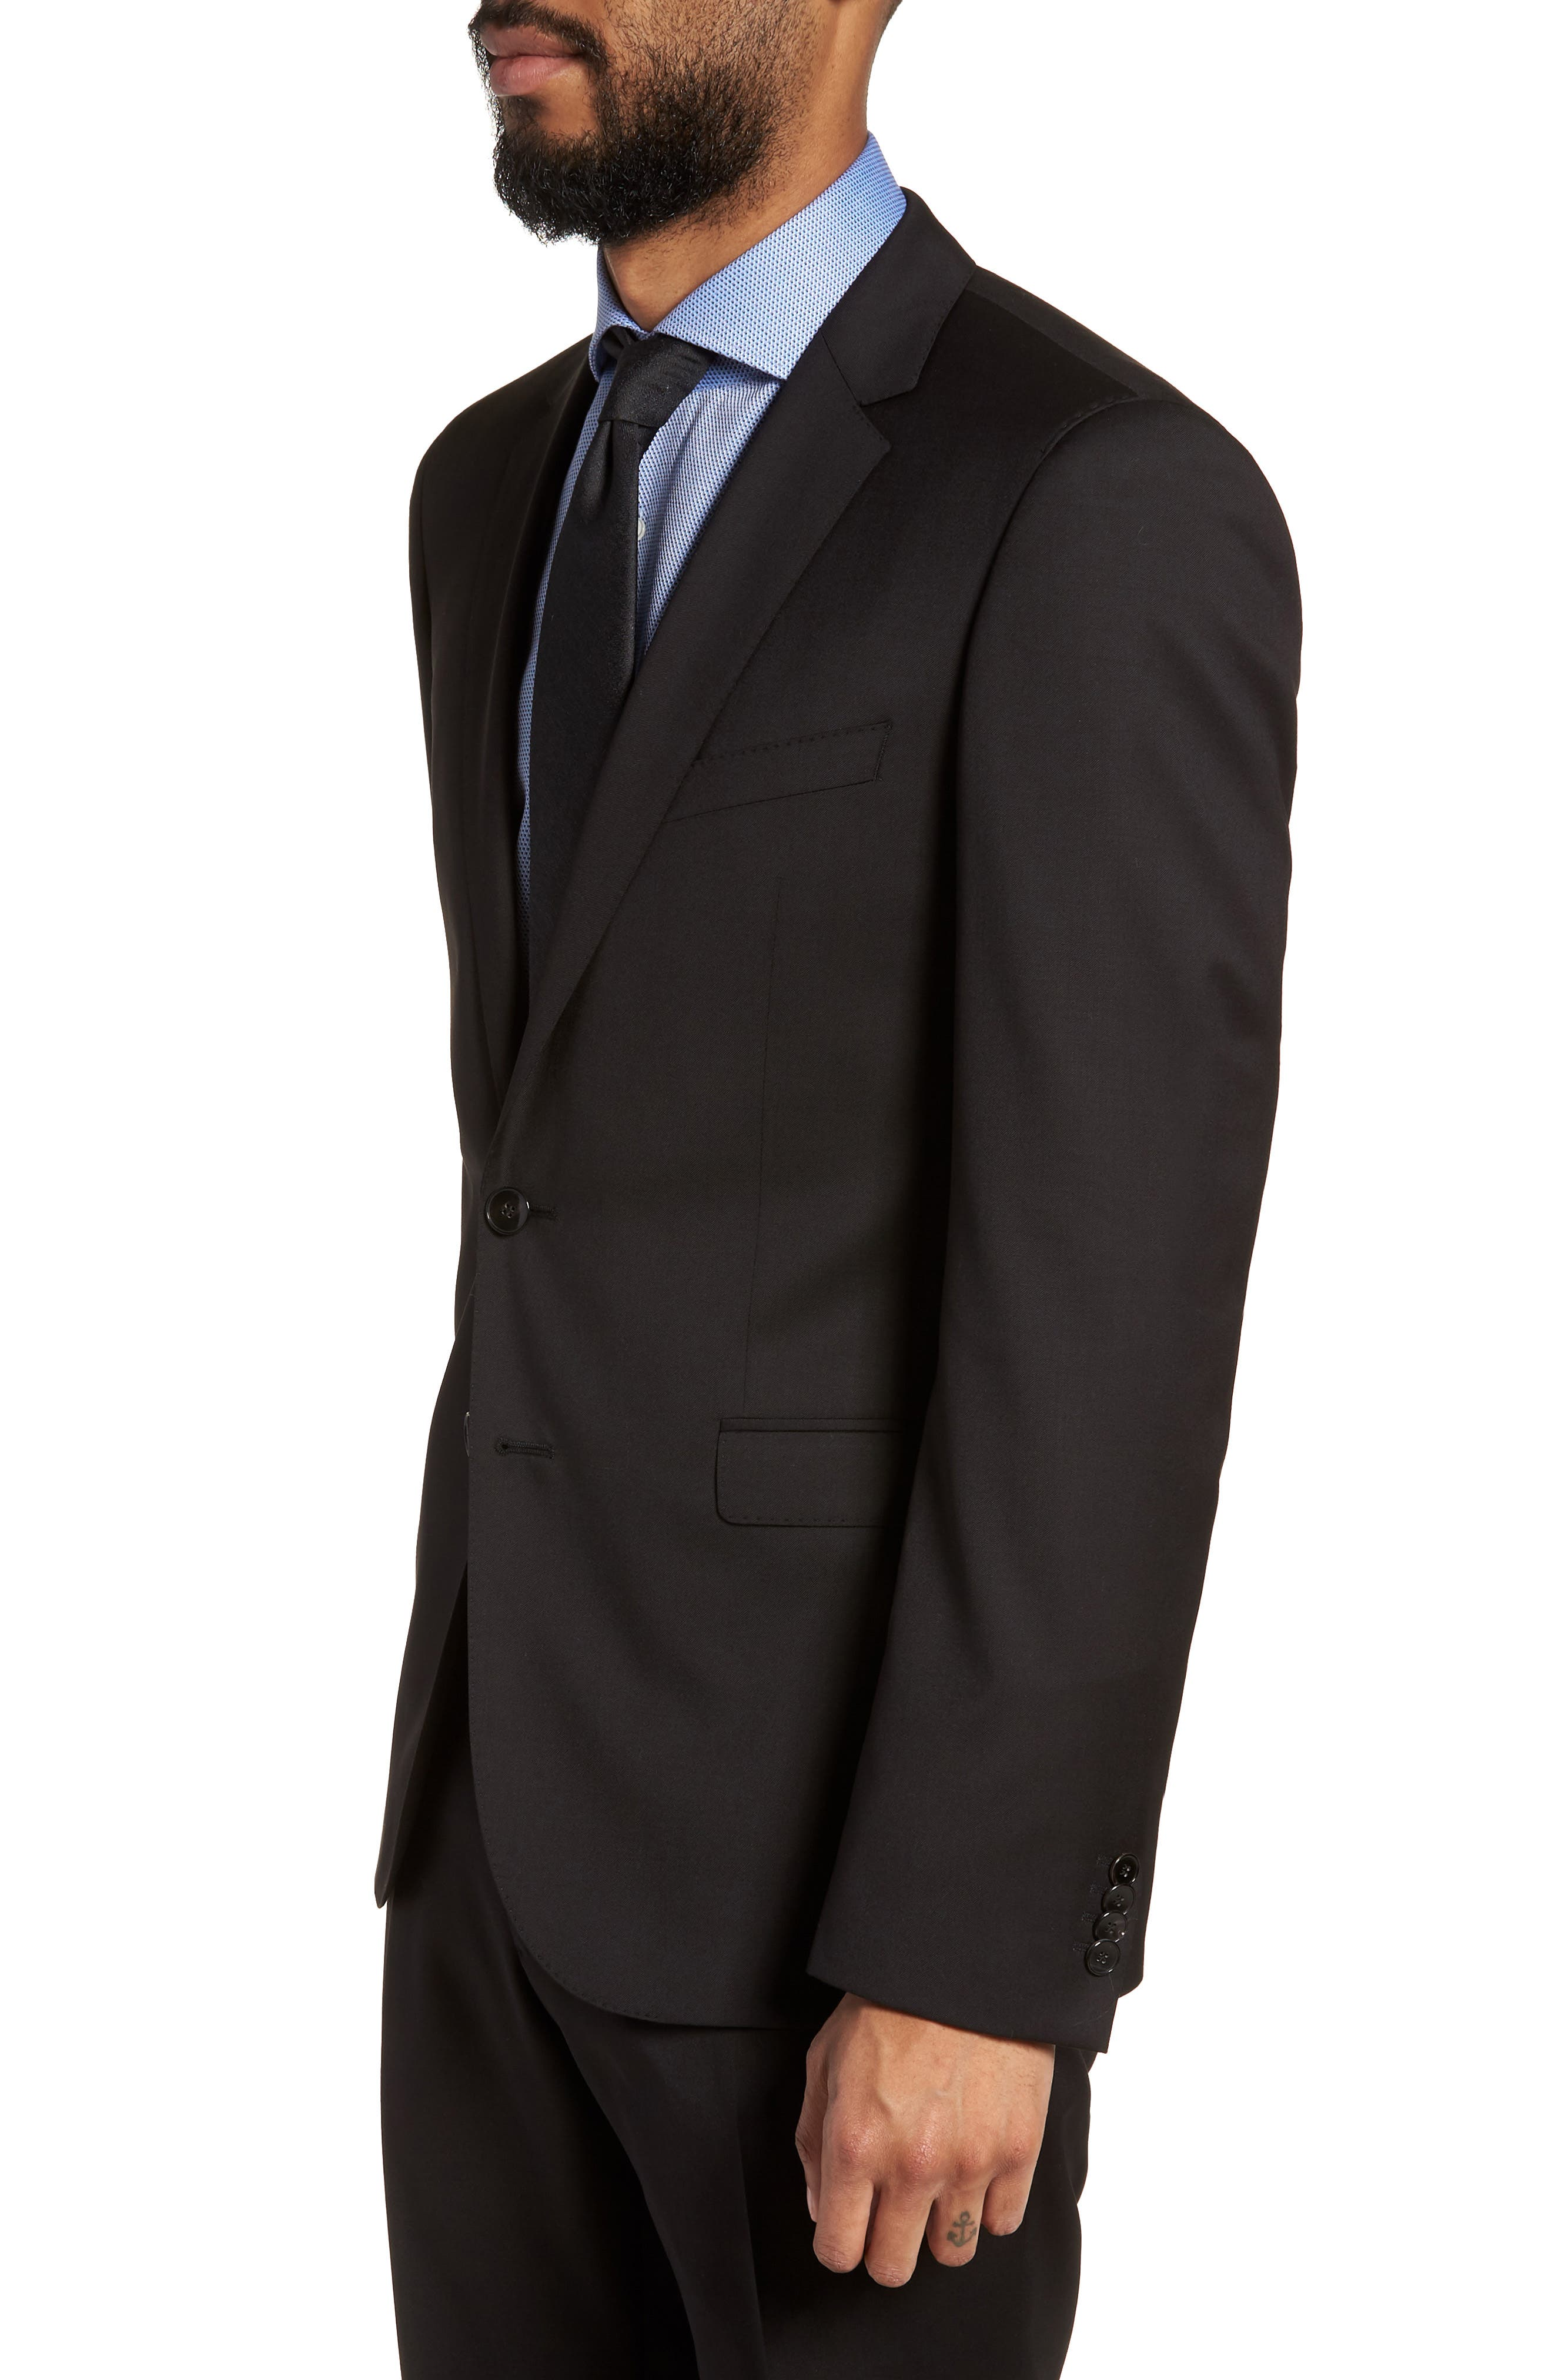 Ryan CYL Extra Trim Fit Solid Wool Sport Coat,                             Alternate thumbnail 3, color,                             BLACK